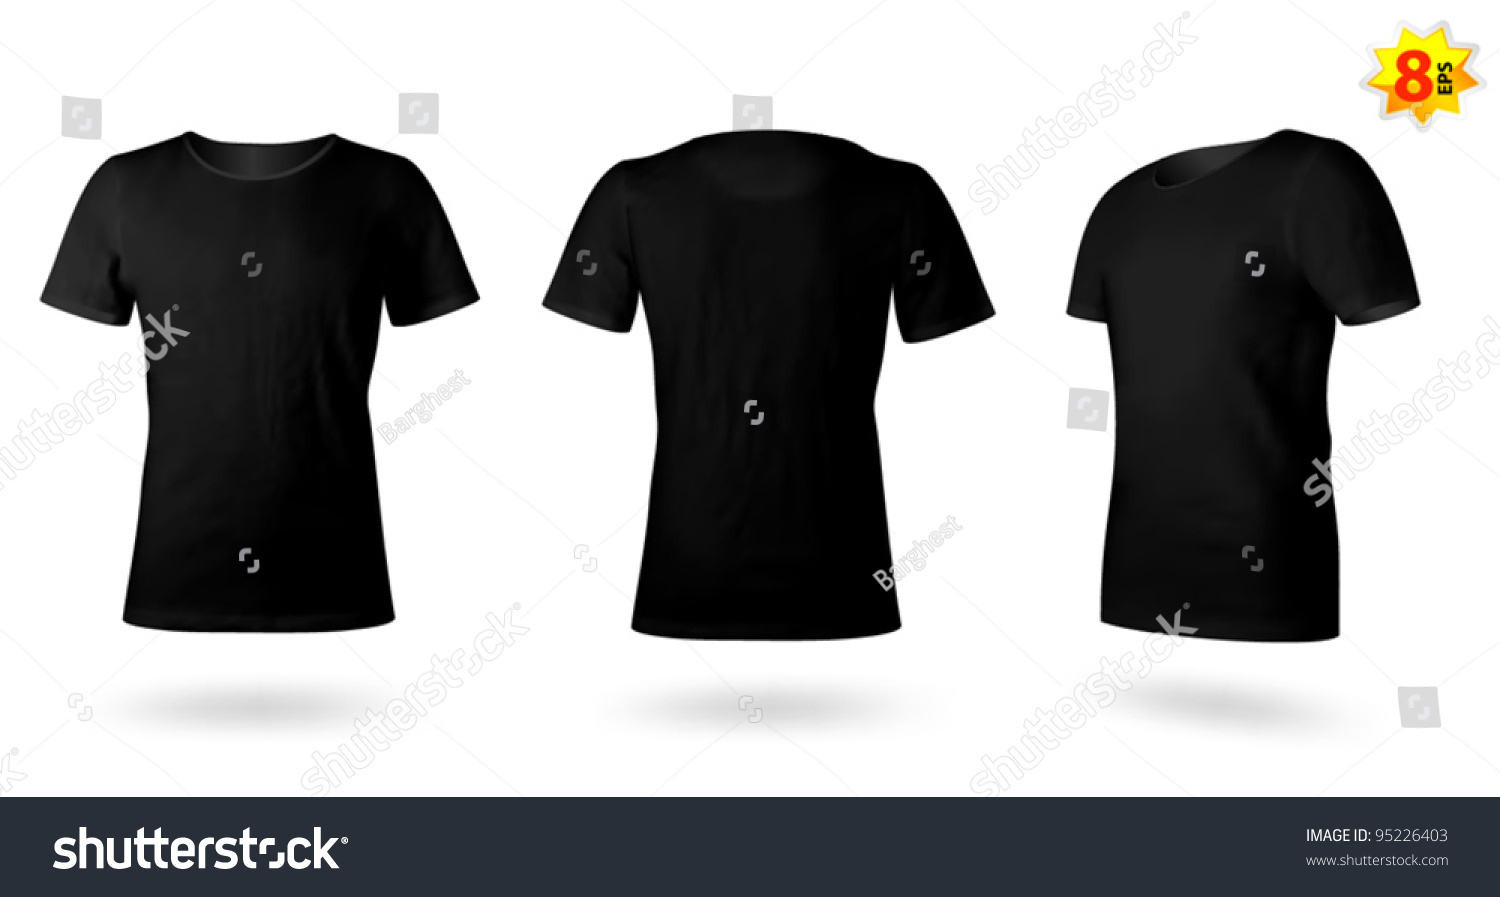 Black t shirt vector template - Royalty Free Black Men T Shirt Template Photo 95226403 Stock